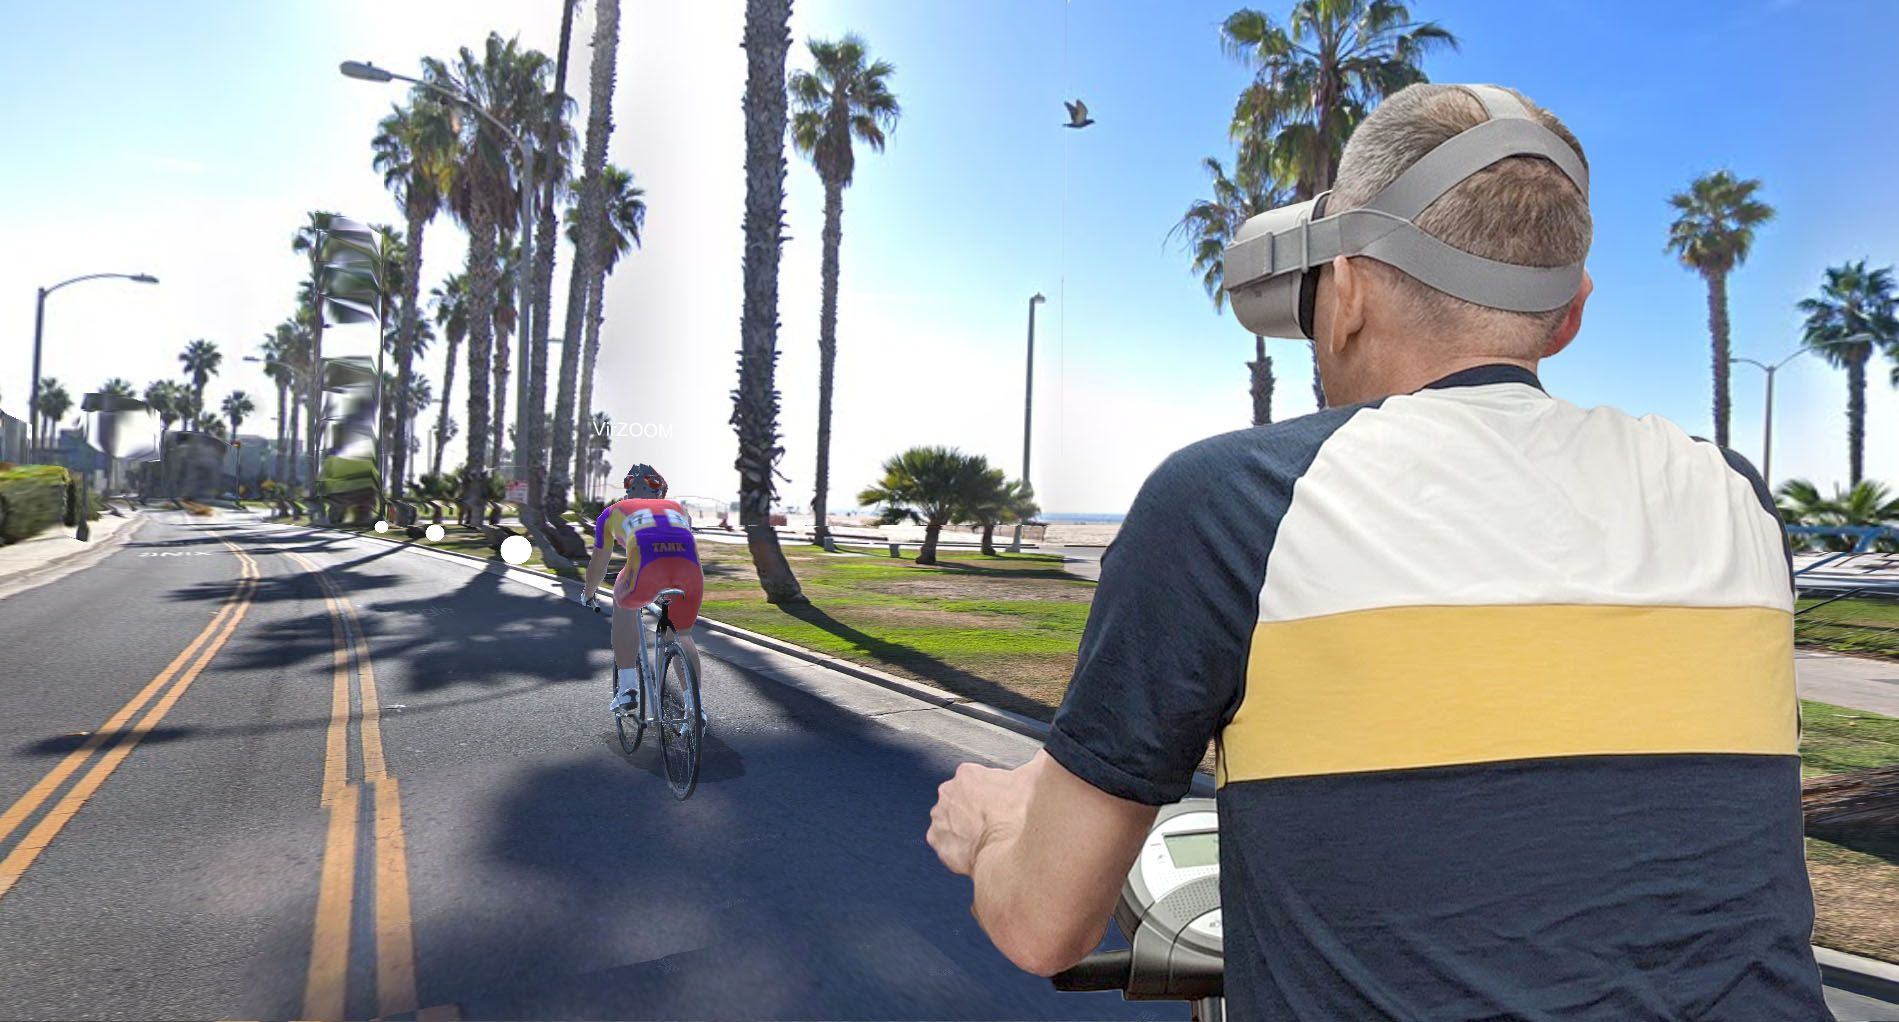 VirZOOM will launched its subscription-based virtual cycling simulator on the Oculus Store this week, fit both smart bike and Google Maps Street View support.